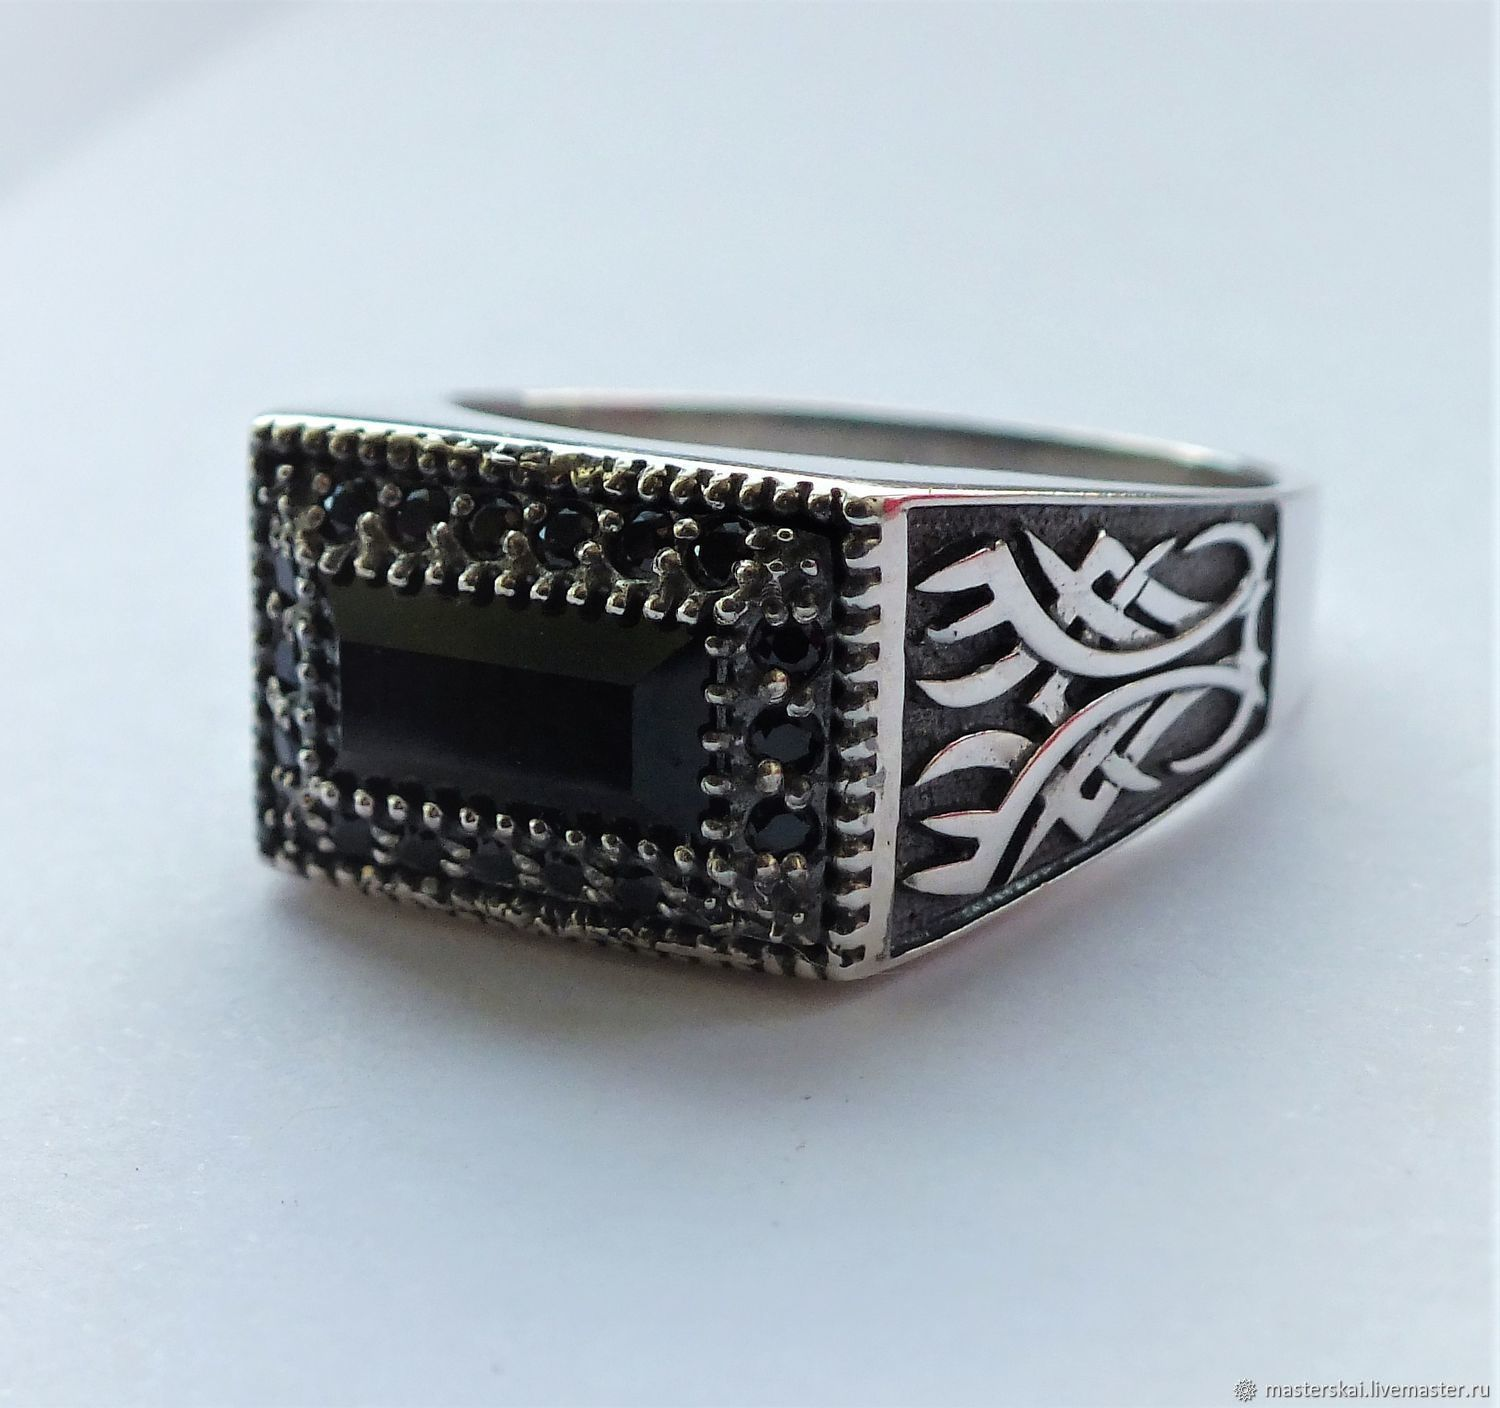 Ring 'Juliano' - agate, Swarovski crystals, 925 silver, Rings, Moscow,  Фото №1